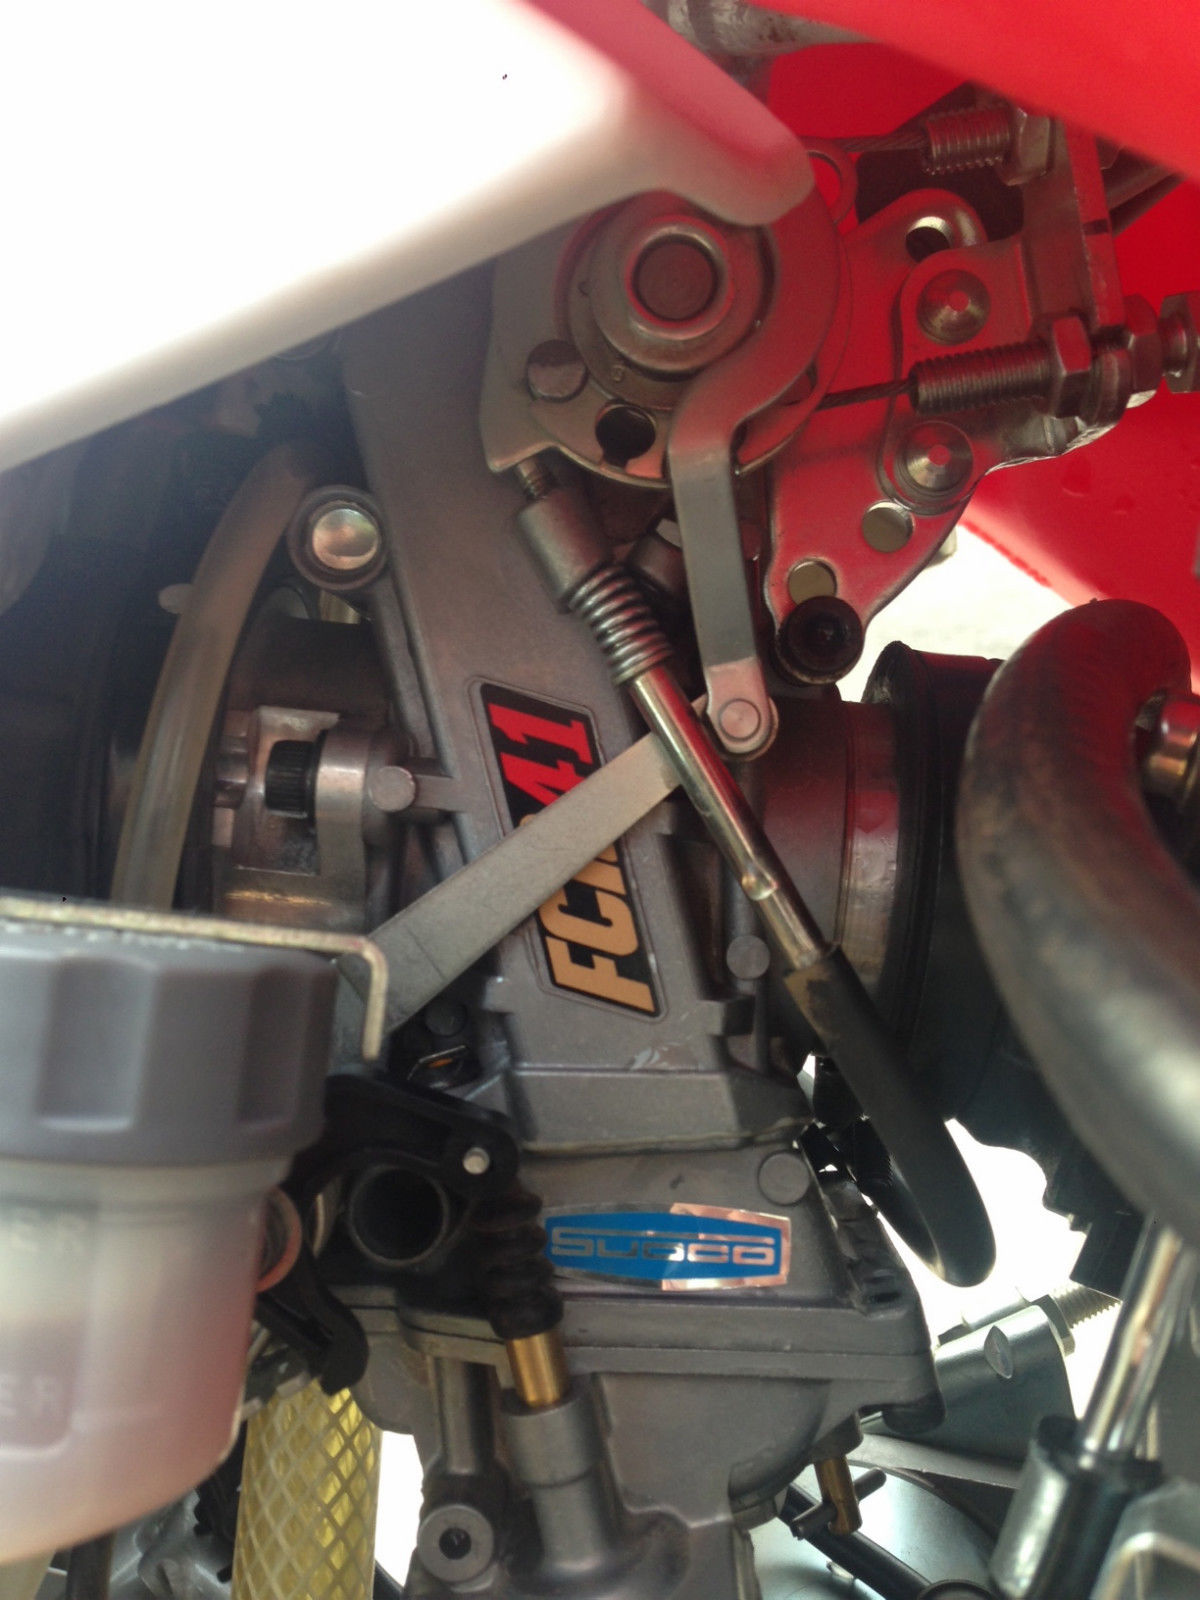 2012 HONDA XR650L AMAZING 980 MILES SINCE NEW! ALL MODS ...